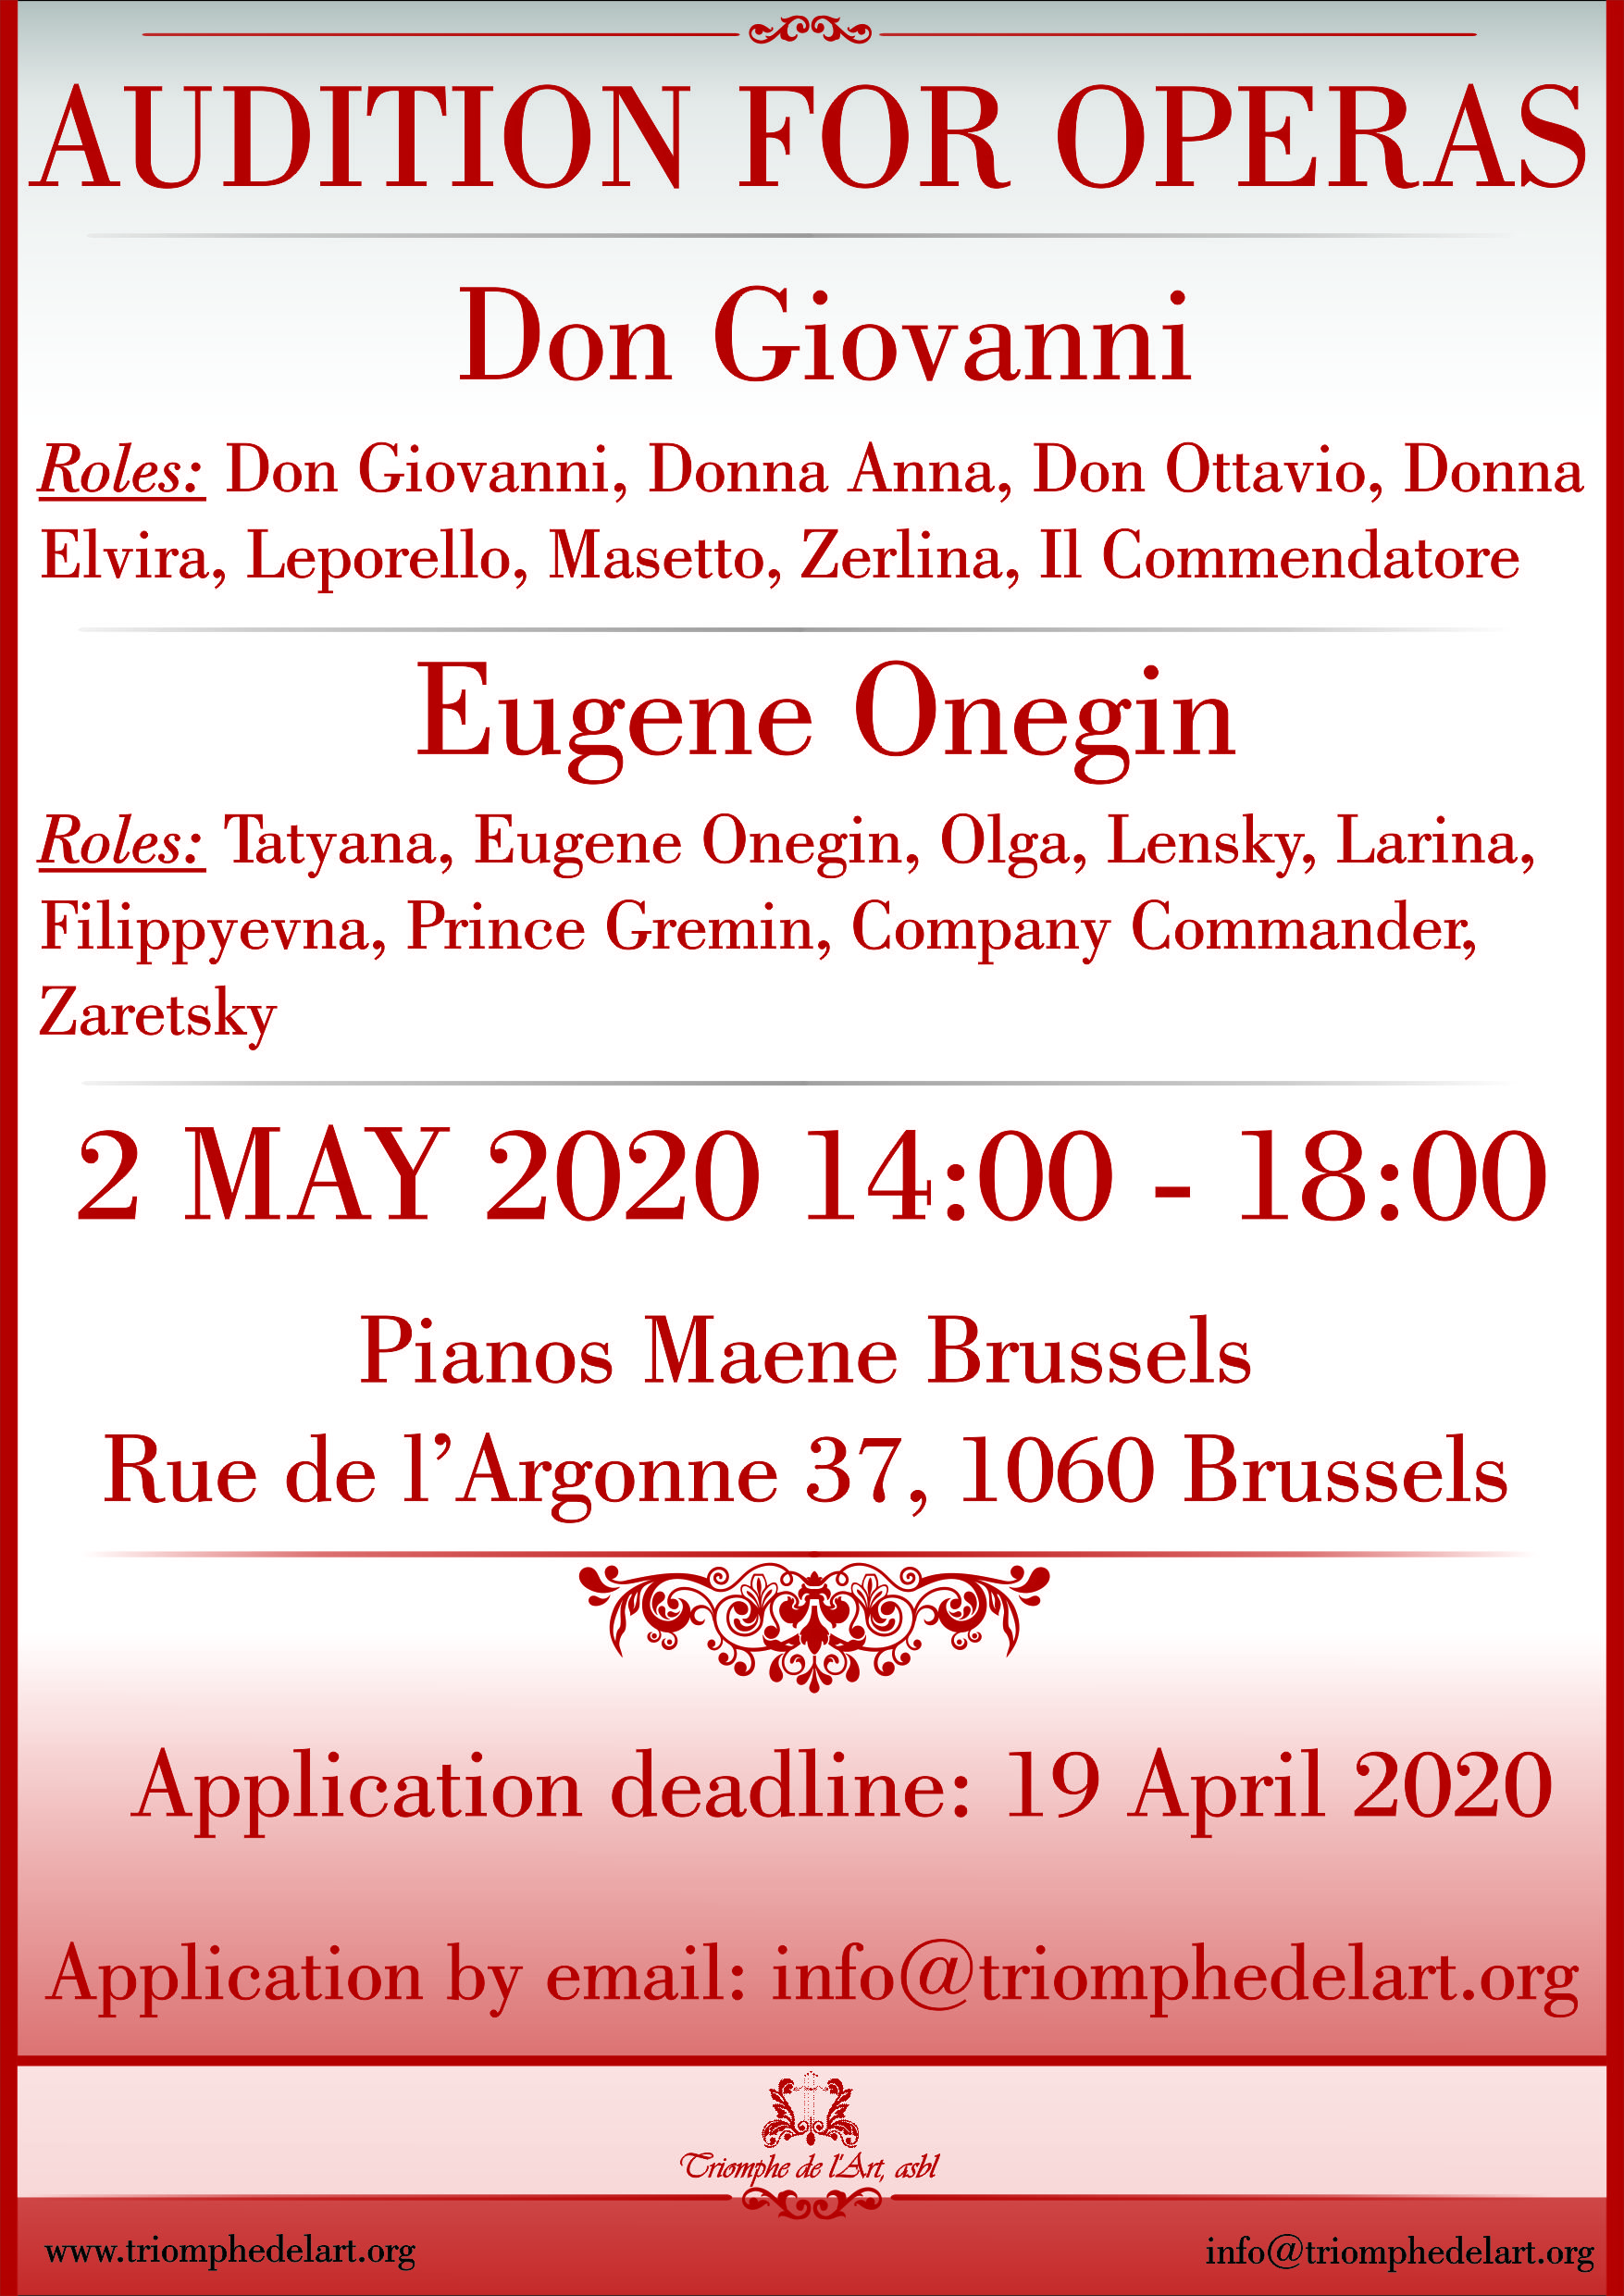 Audition operas Don Giovanni and Eugene Onegin